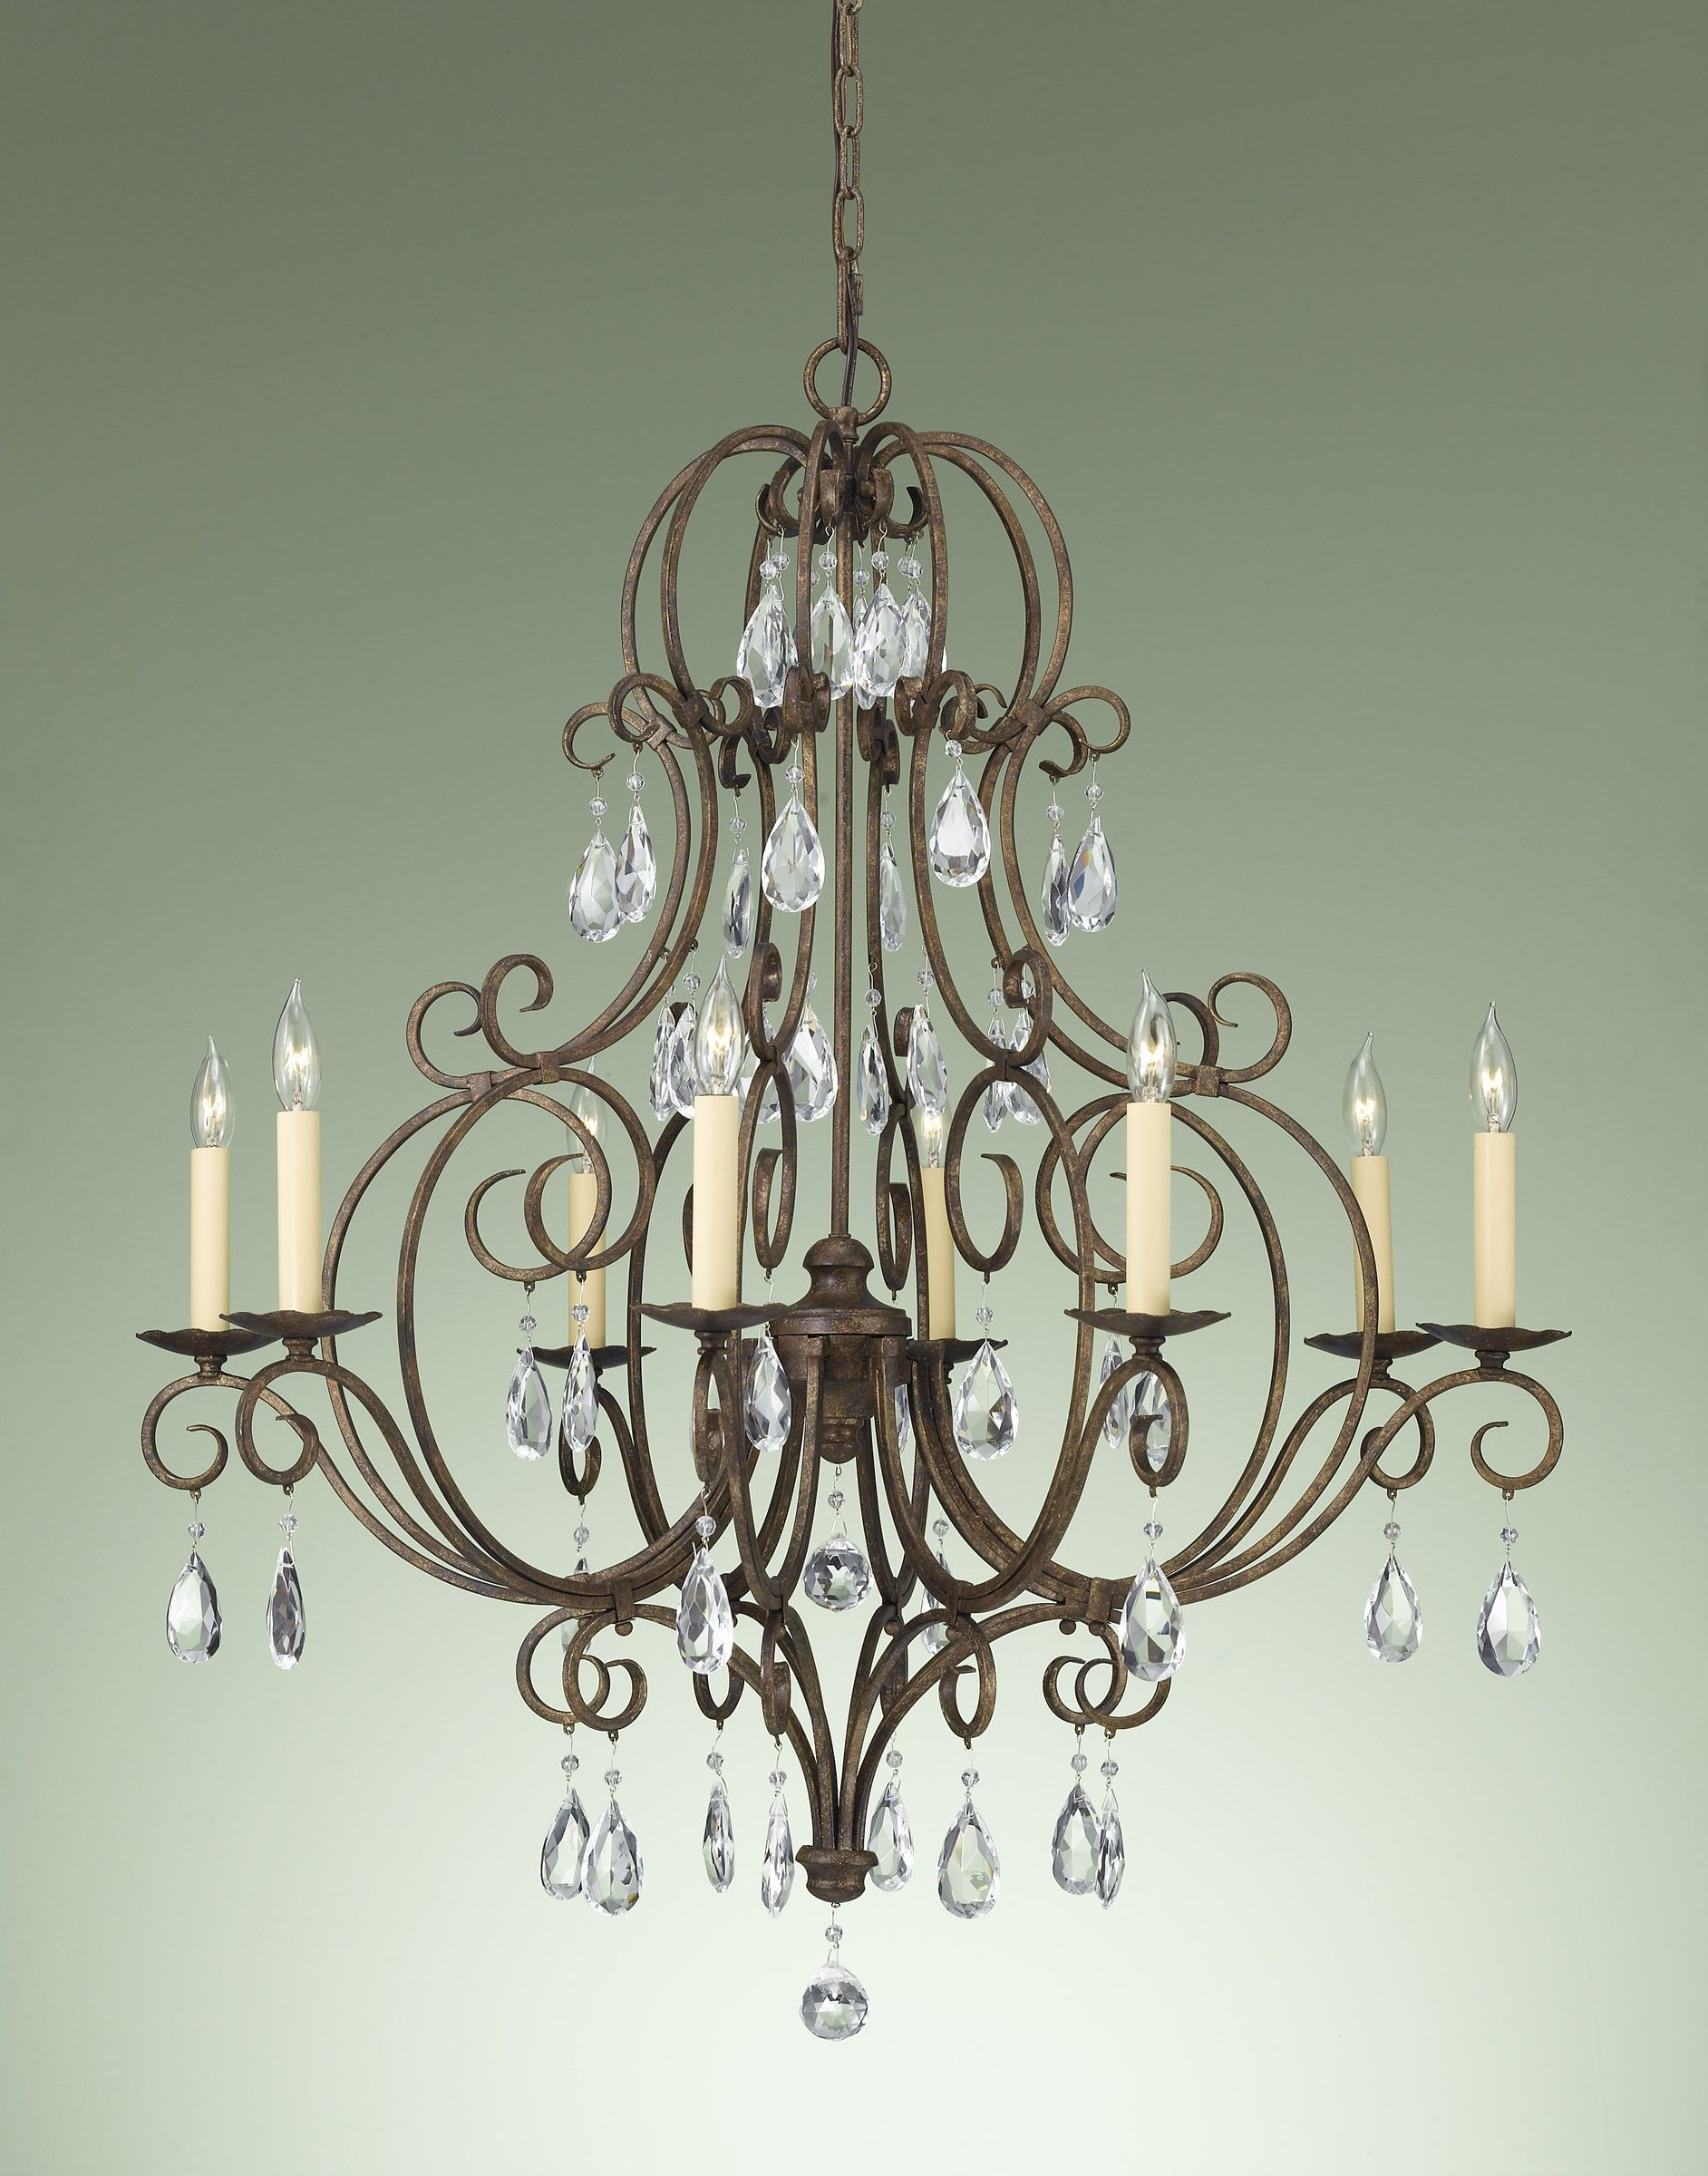 Bronze Crystal Chandelier Whse Of Tiffany Rl8049 Edwards Regarding Bronze And Crystal Chandeliers (#2 of 12)